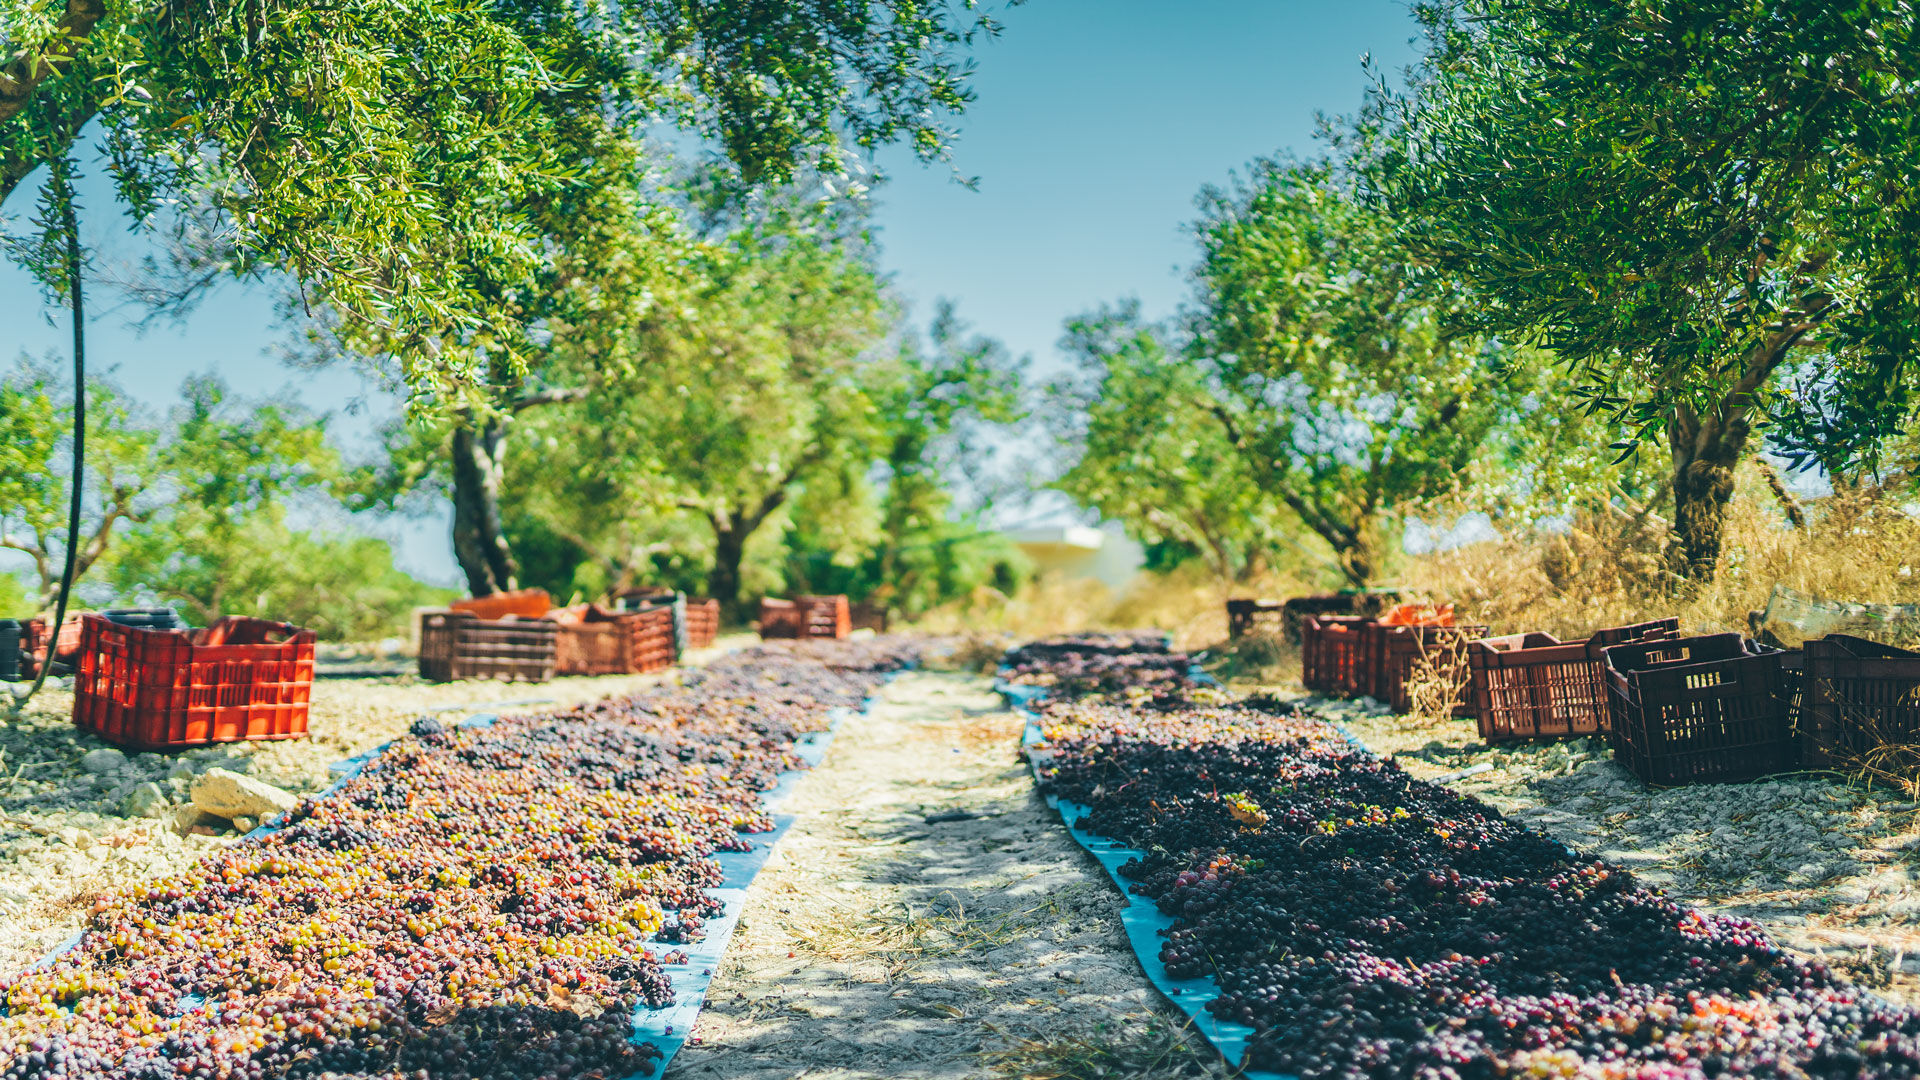 It's worth coinciding your visit to an olive press during the harvest time